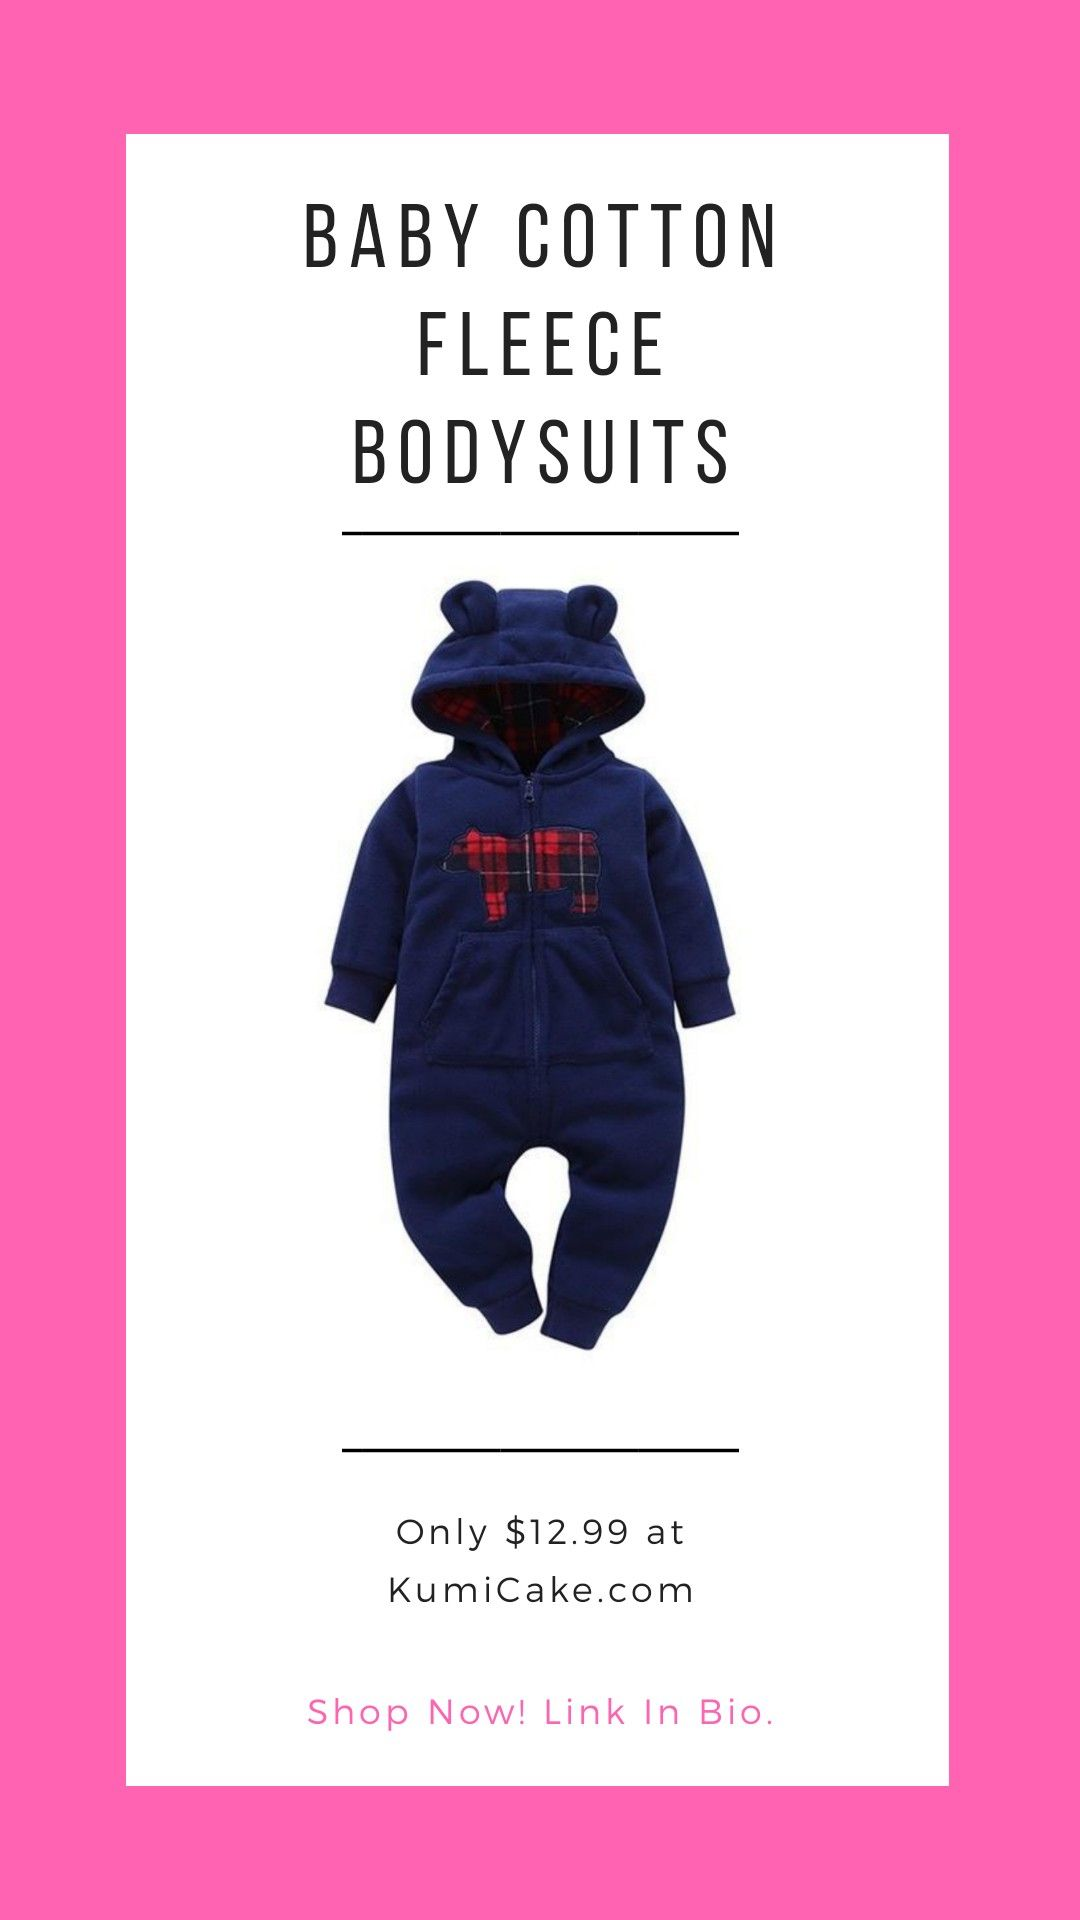 50382b0c0e8a Keep your little one perfectly warm and cozy in this adorable cotton fleece  jumpsuit! The